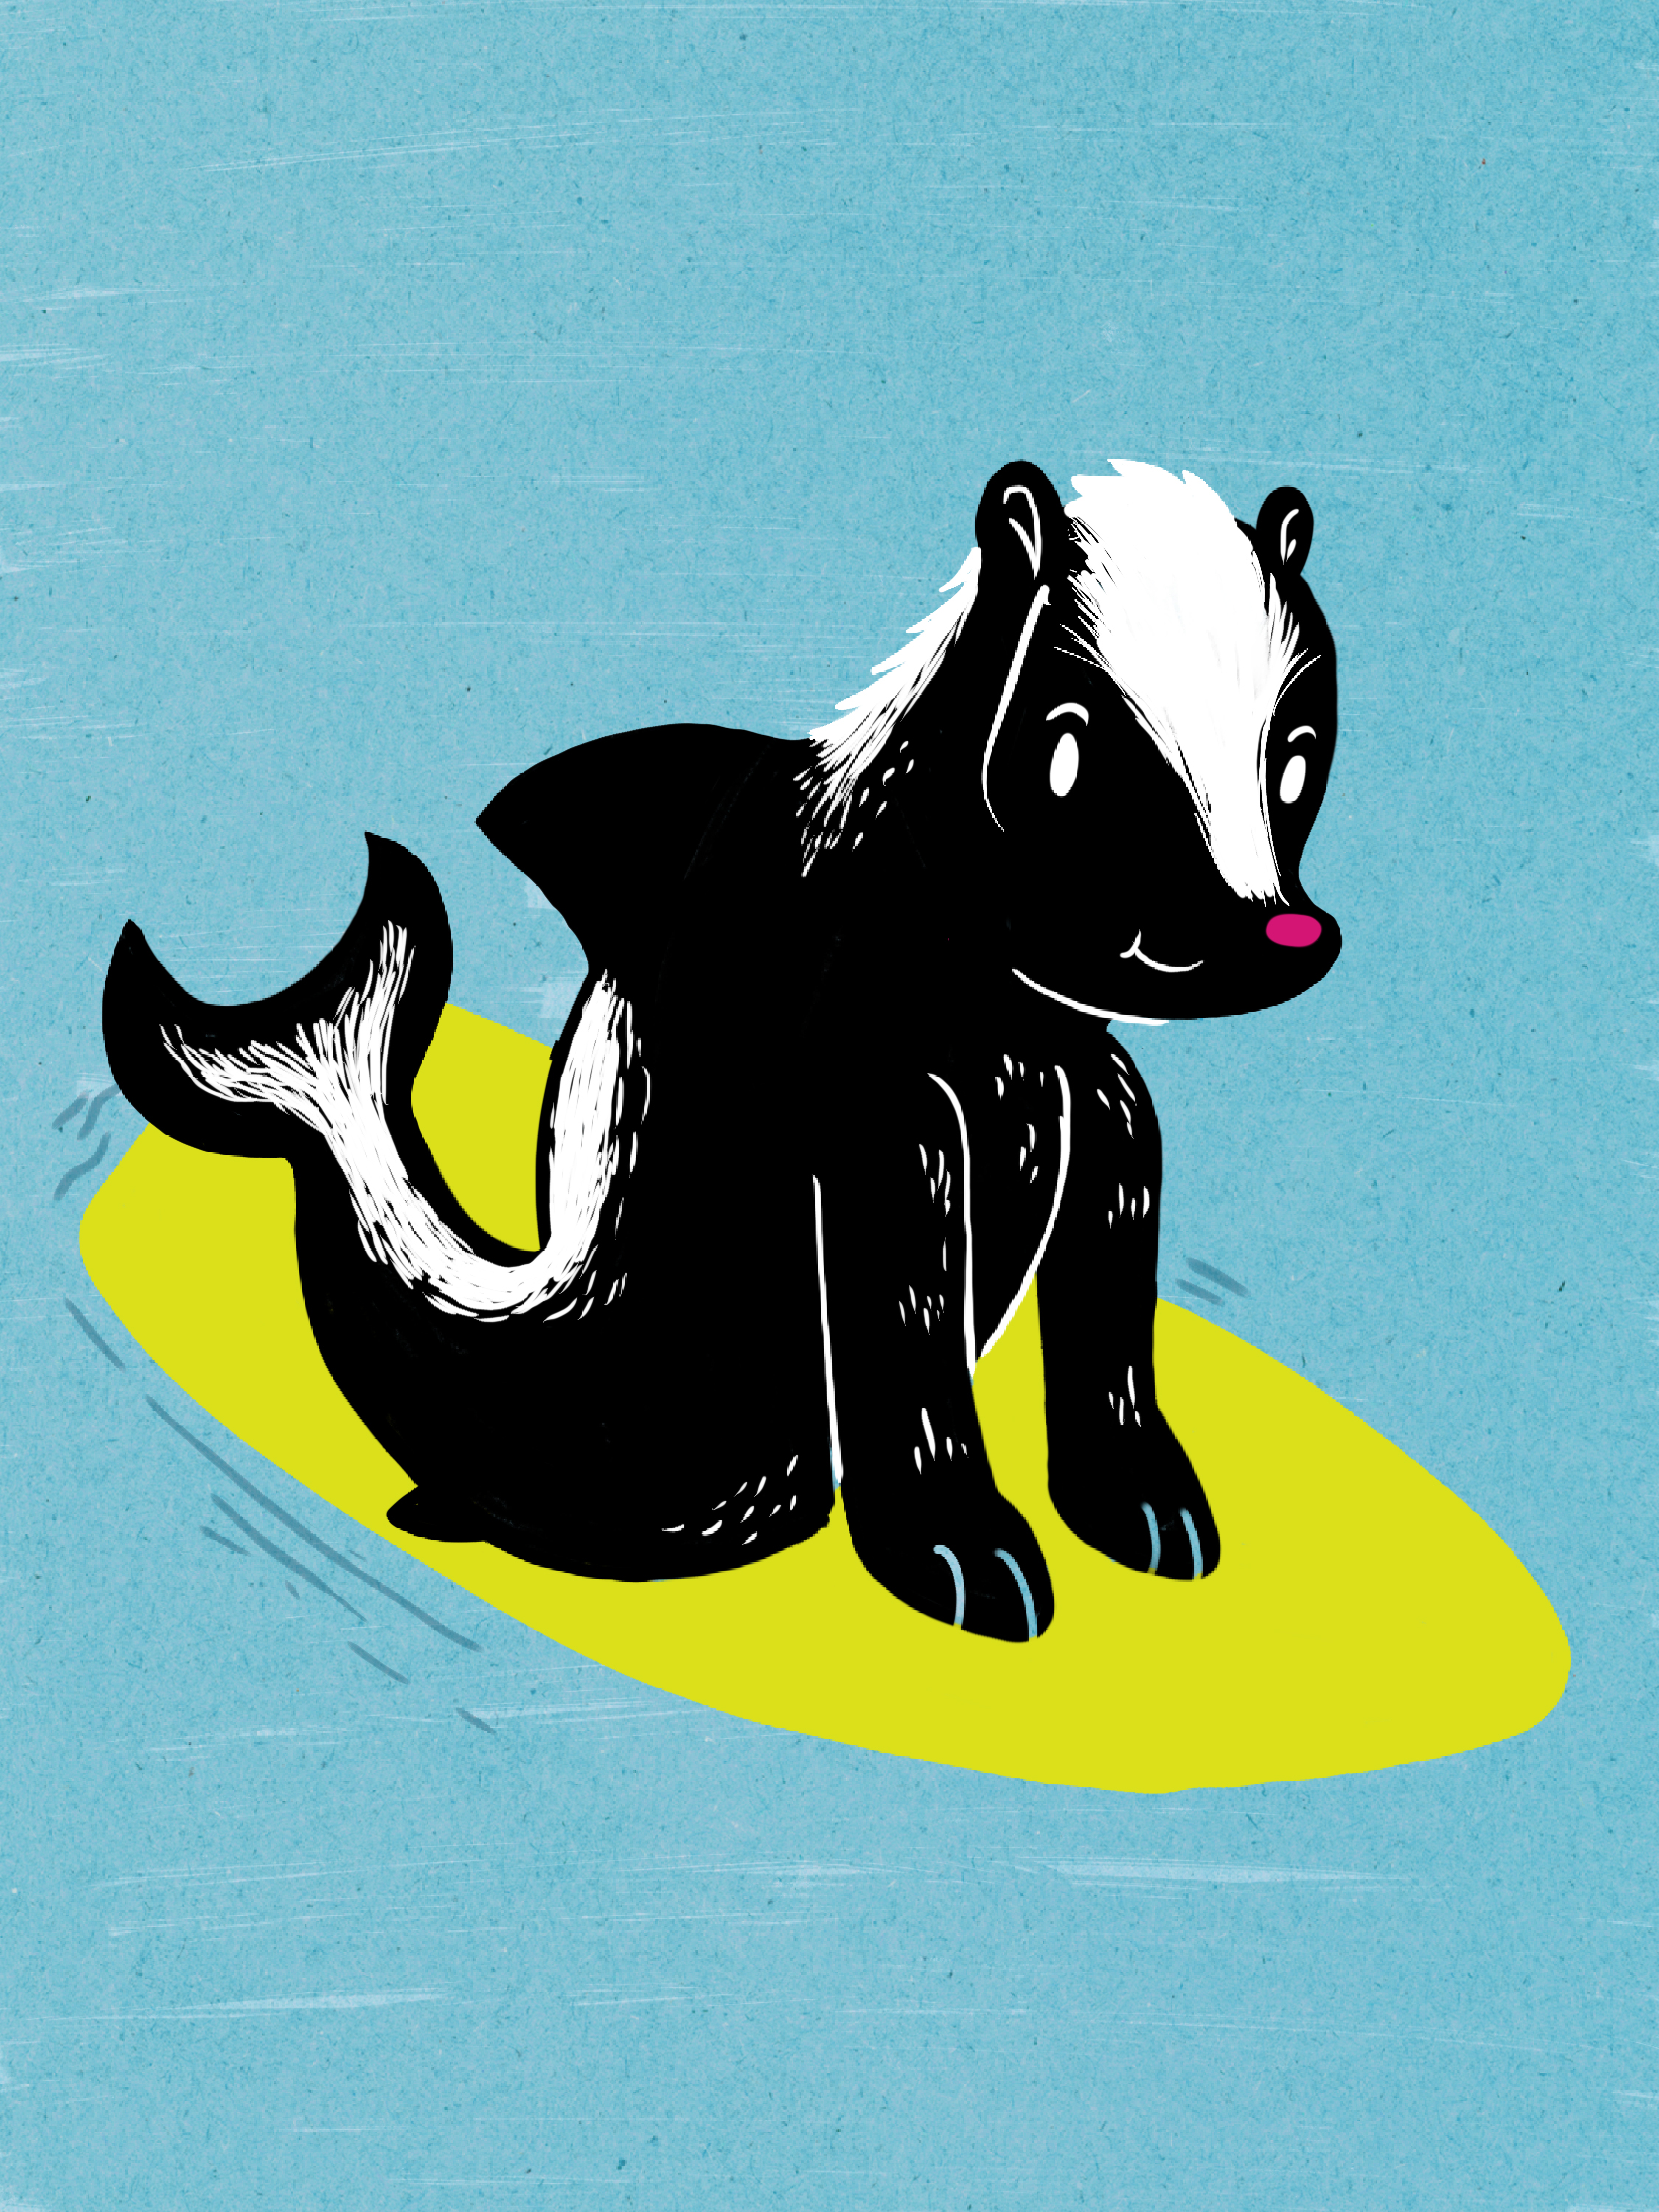 Meet the Awkward Skunkshark, who lives on both land and water! Learn more at the reception.